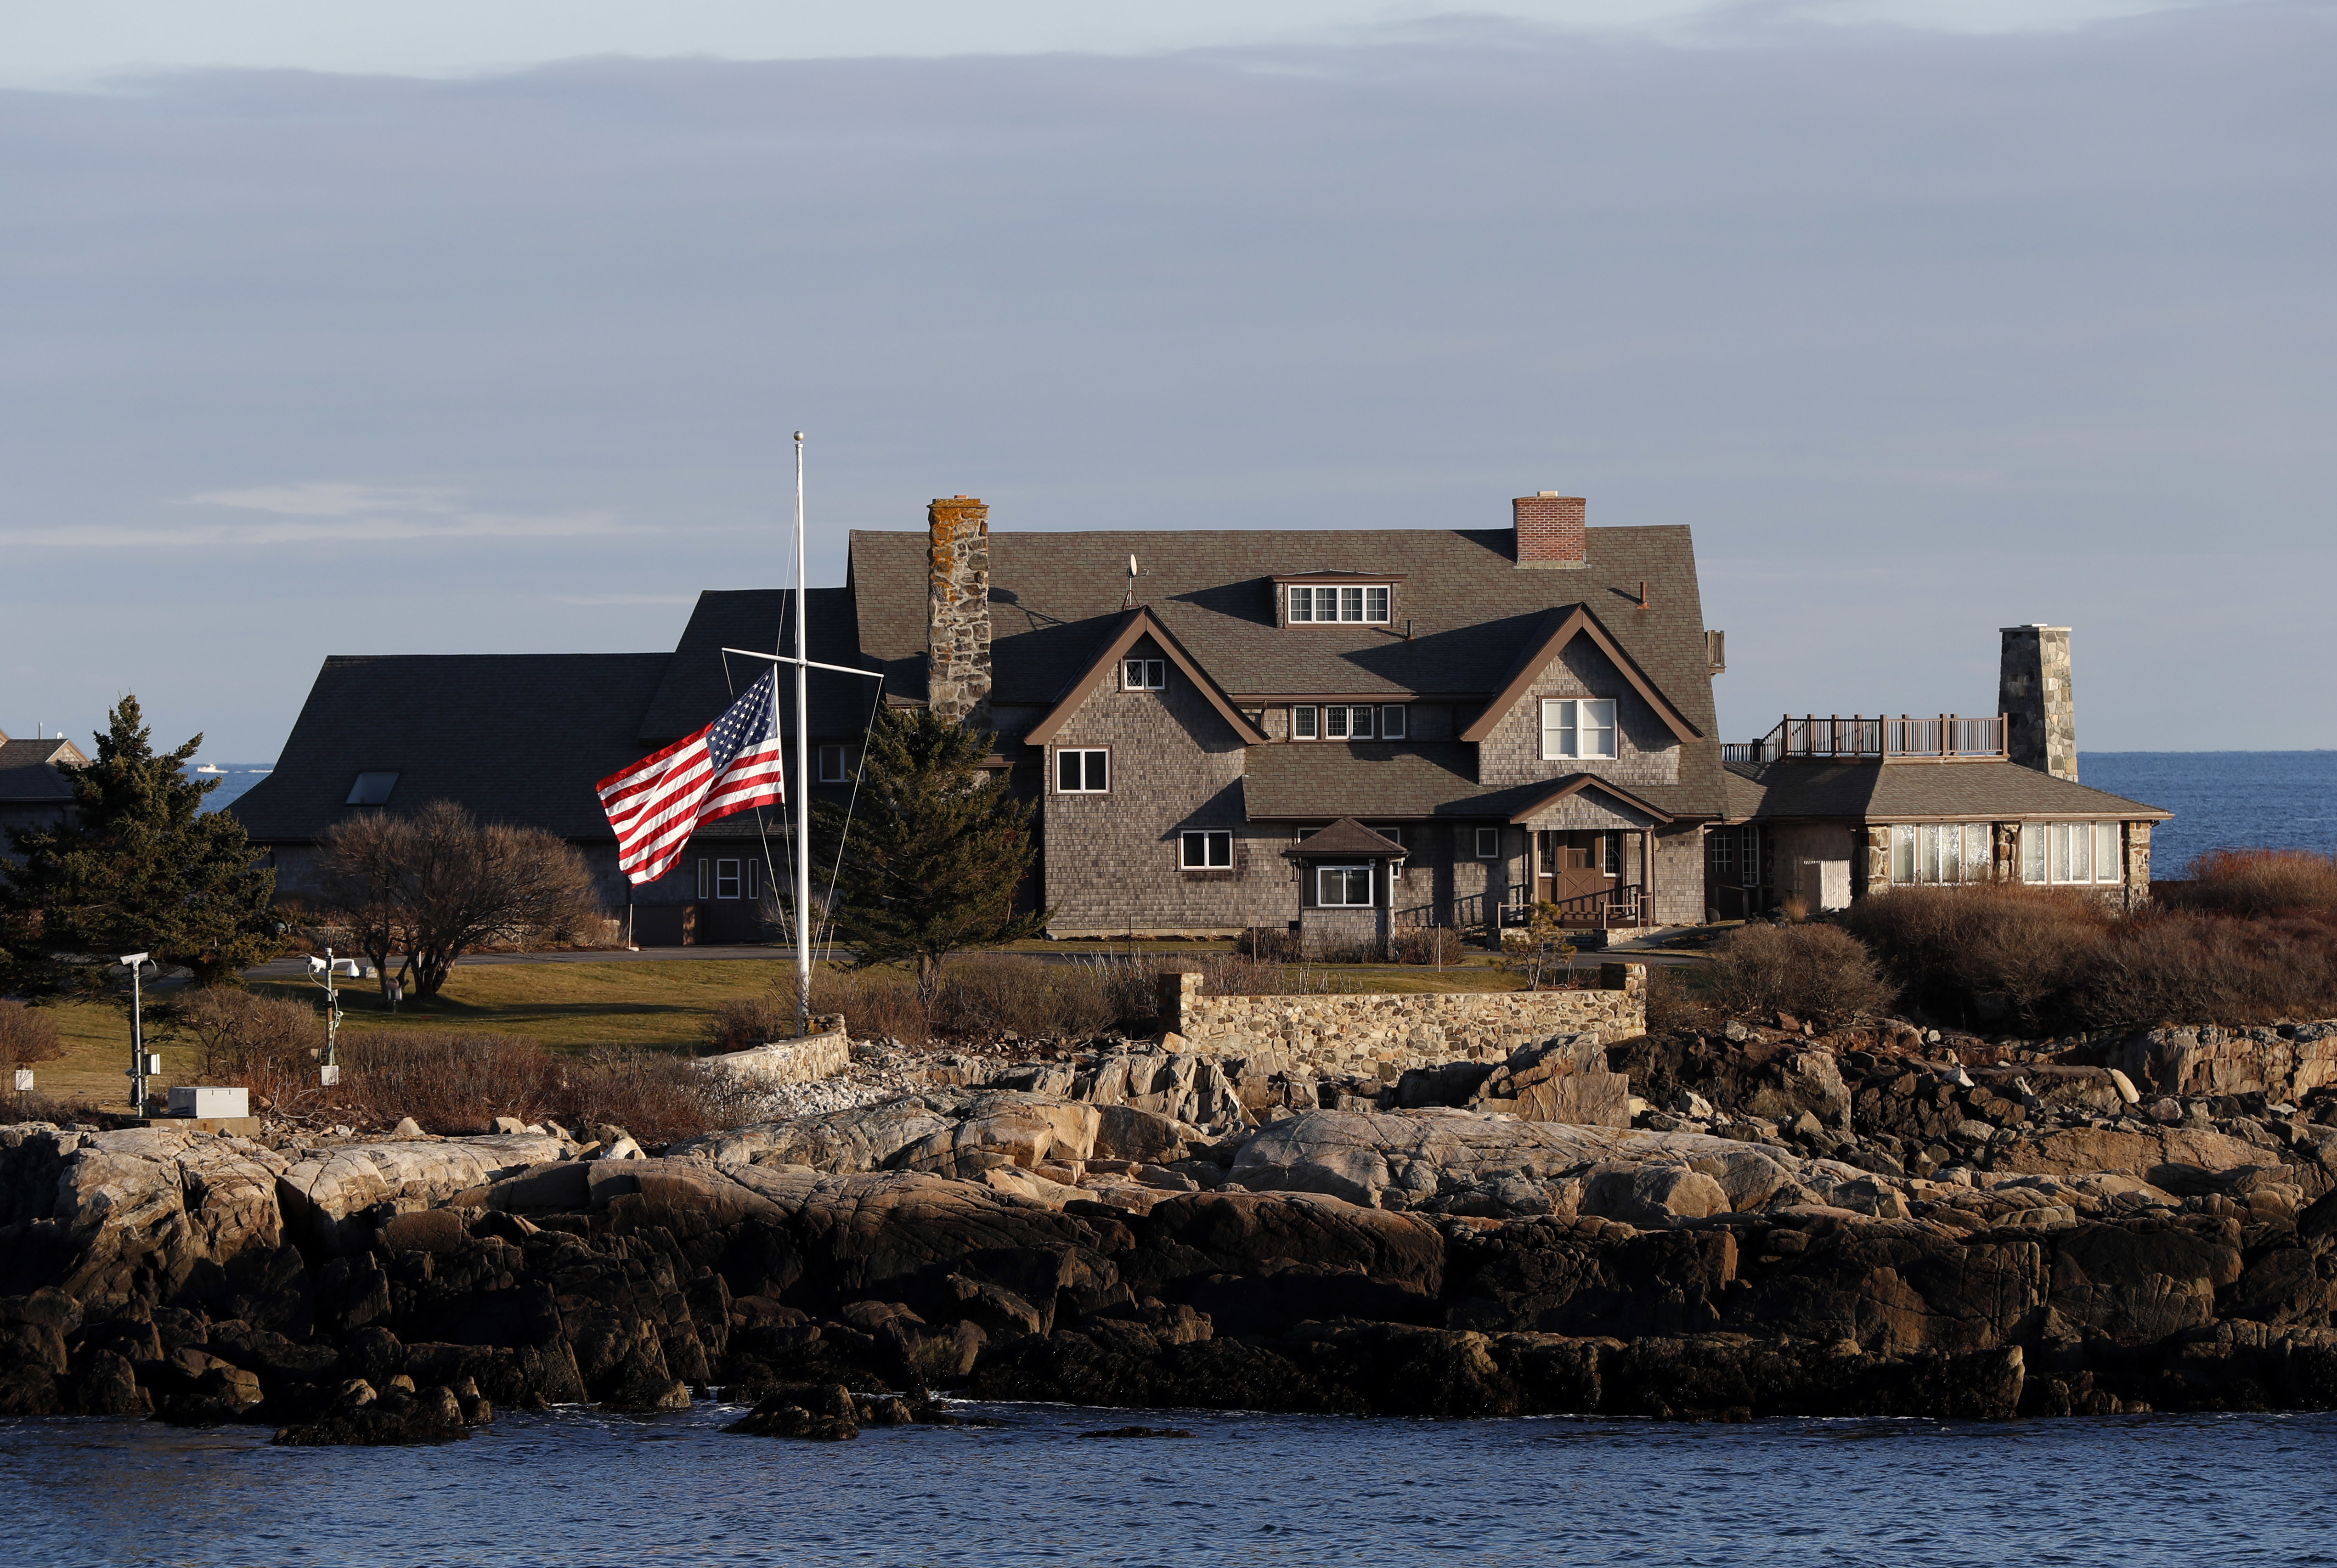 The American flag flies at half-staff in honor of President George H. W. Bush at Walker's Point, the Bush's summer home, Saturday, Dec. 1, in Kennebunkport, Maine. Bush died at the age of 94 on Friday, about eight months after the death of his wife, Barbara Bush. (AP Photo/Robert F. Bukaty)